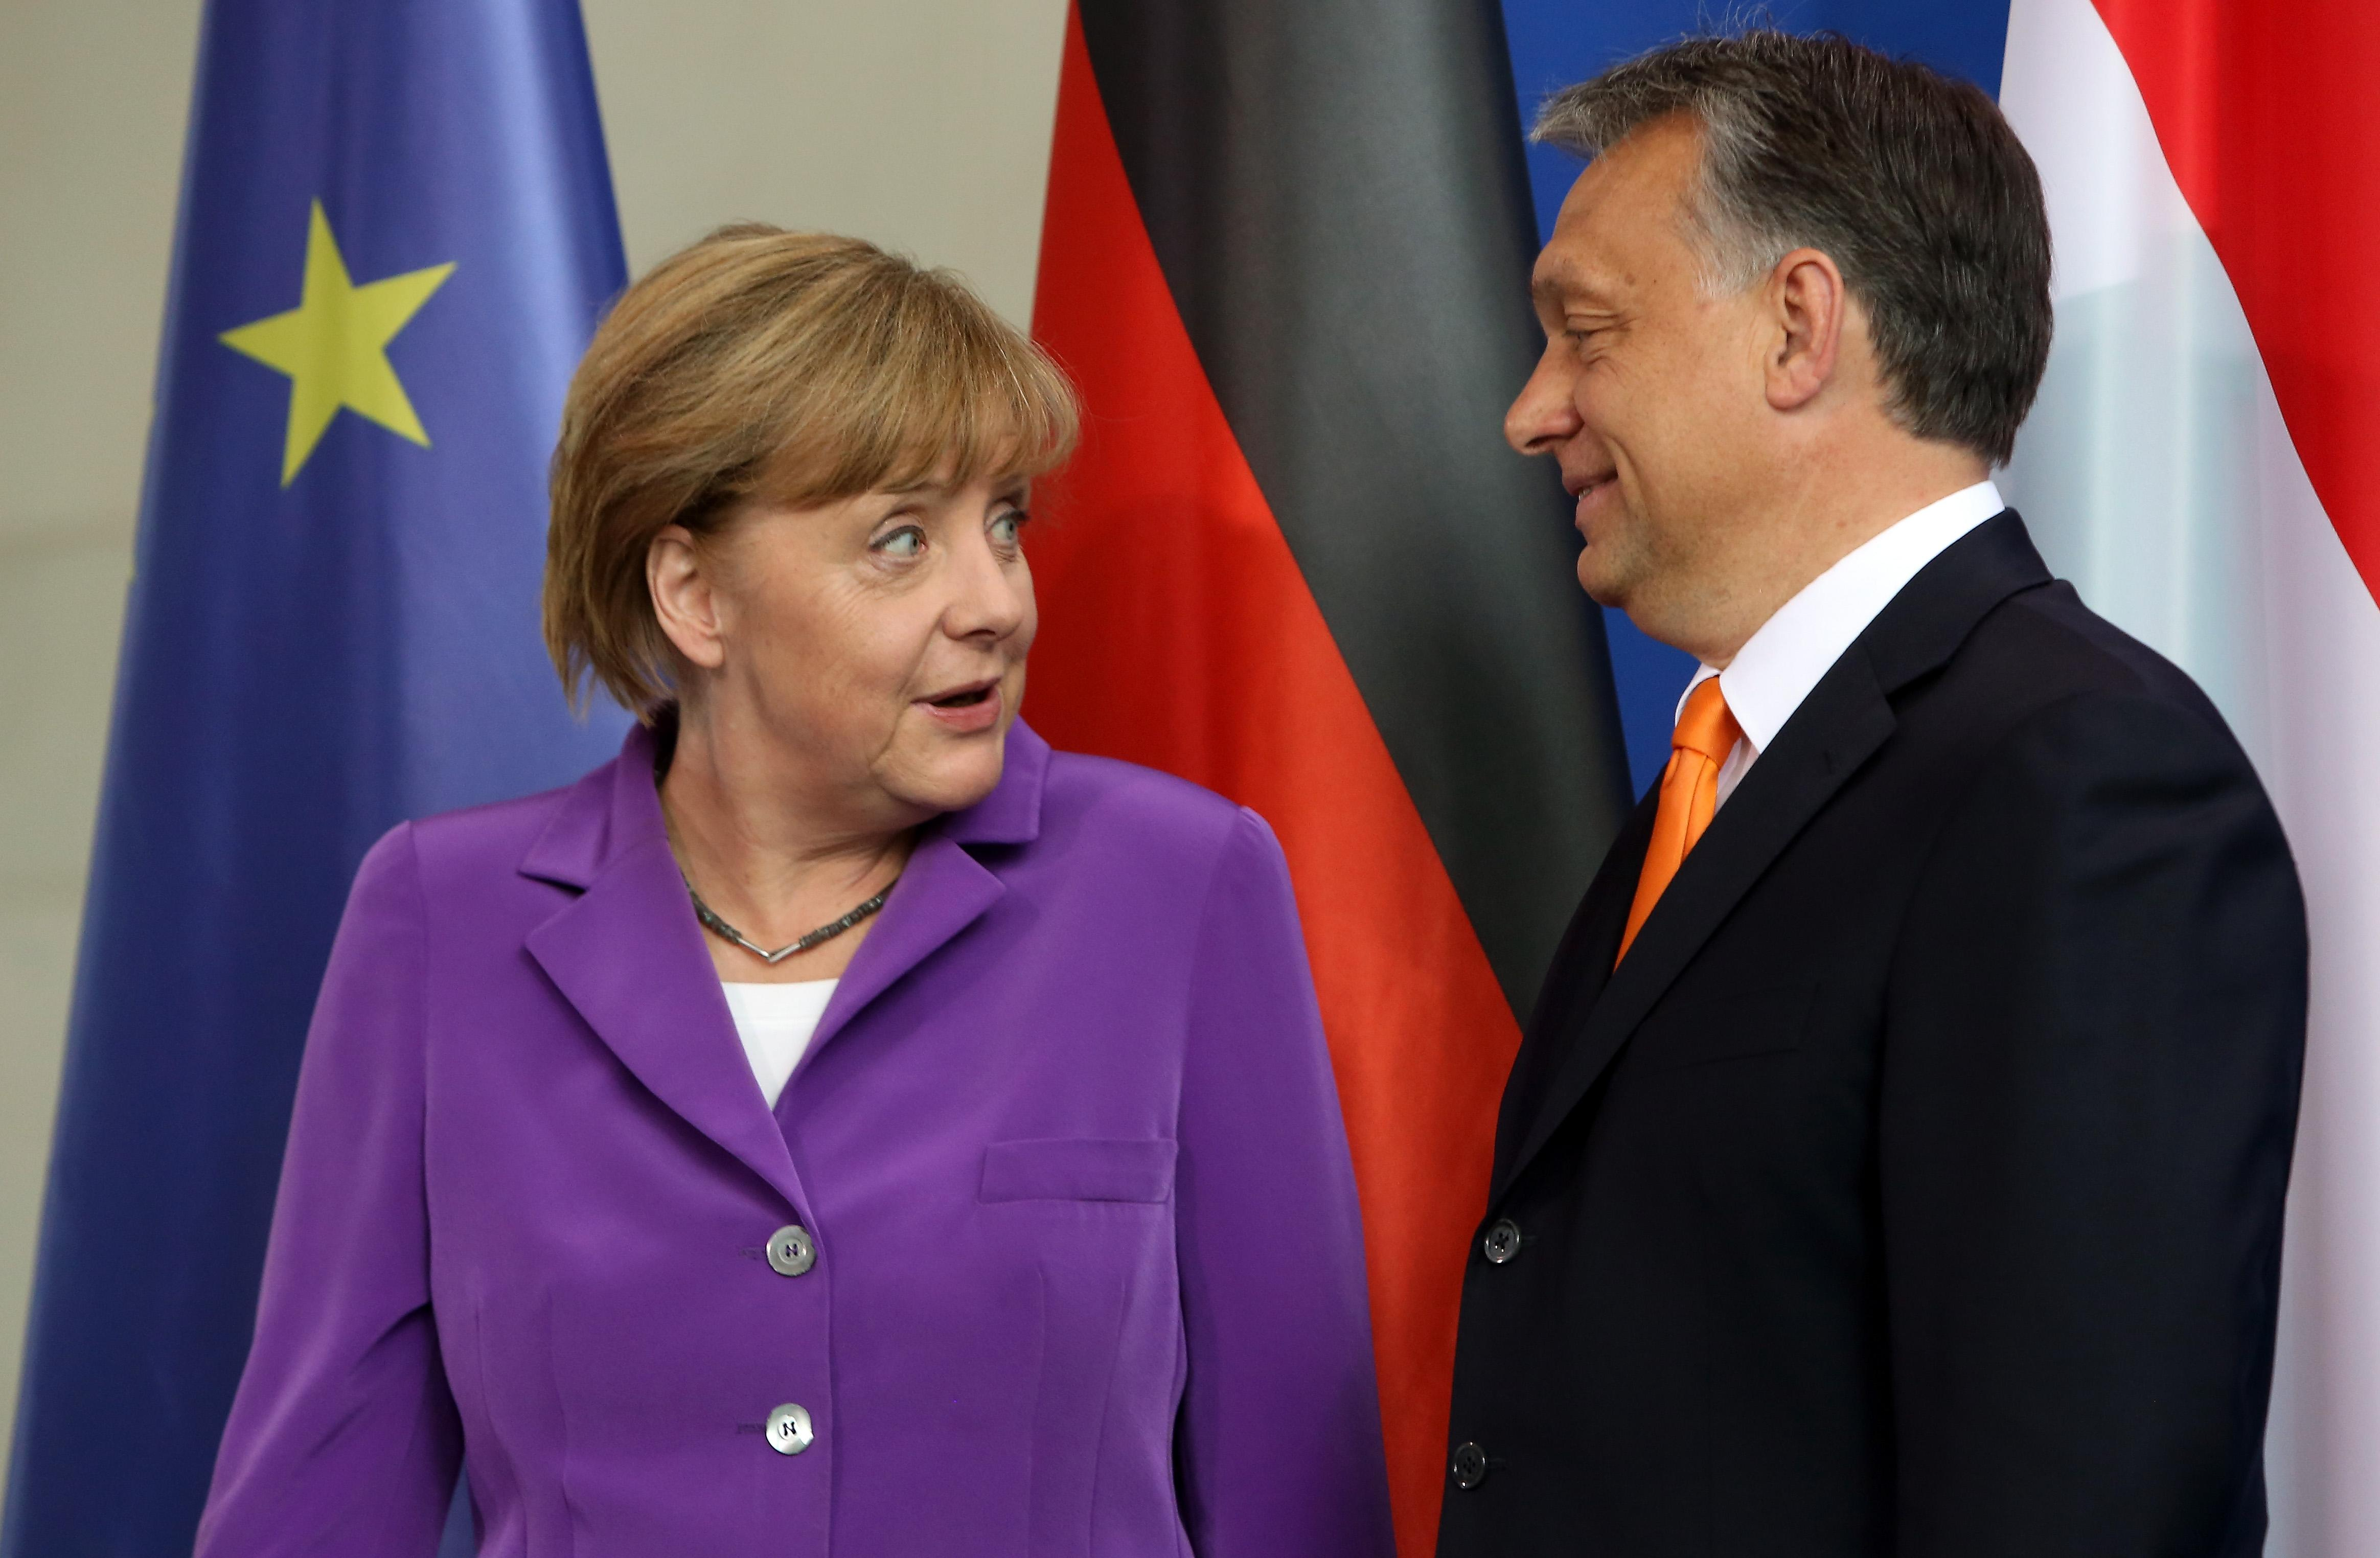 Hungarian Prime Minister Viktor Orban (R) and German Chancellor Angela Merkel meet at the German Chancellery in Berlin on May 8, 2014 (AFP Photo/Adam Berry)